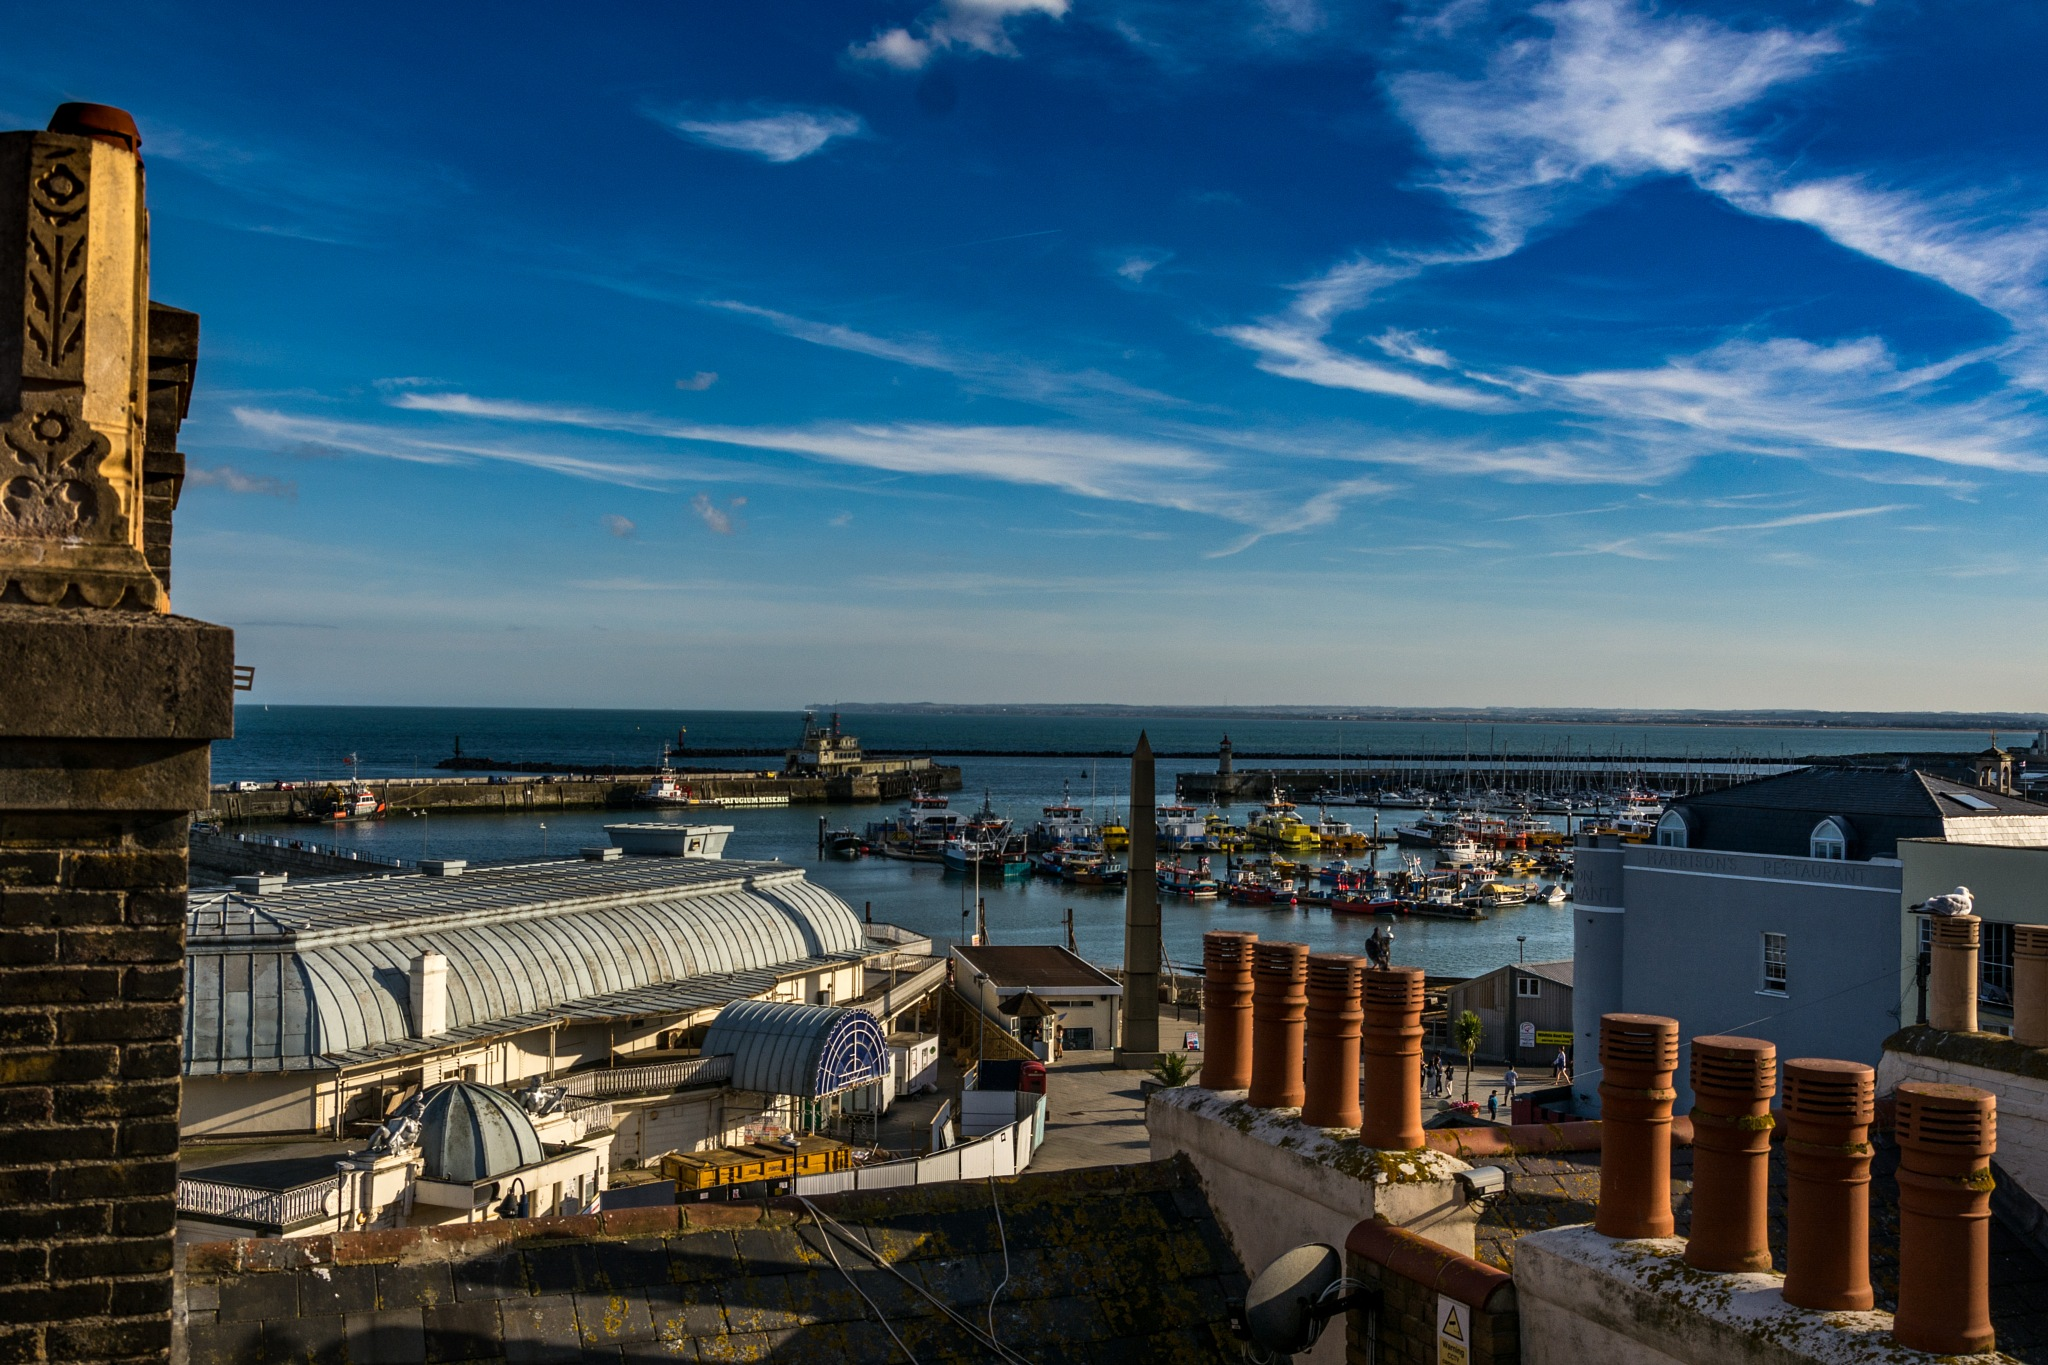 Ramsgate Harbour by Poetsoftheheart